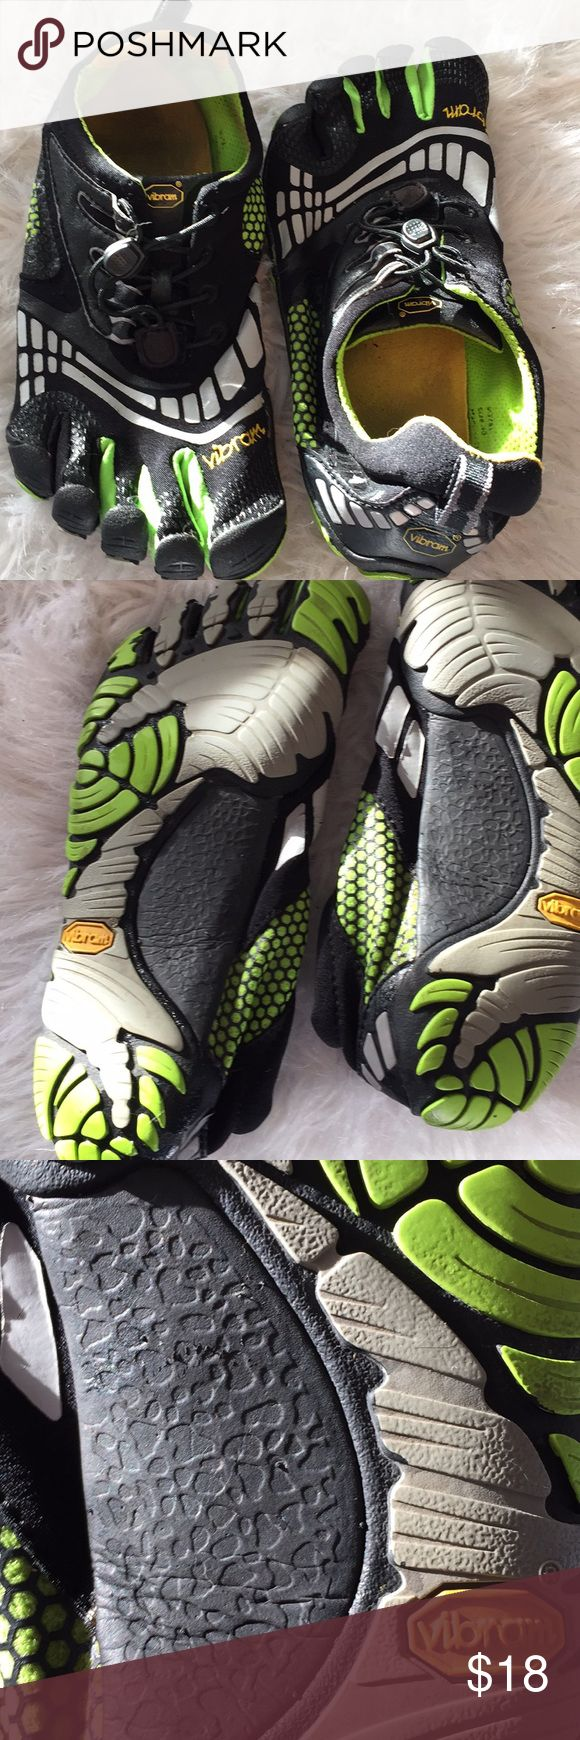 VIBRAM five finger shoes sz 40 these have been gently worn and show some wear - SEE PICS have plenty of life left freshly washed & air dried sz 40 Vibram Shoes Athletic Shoes